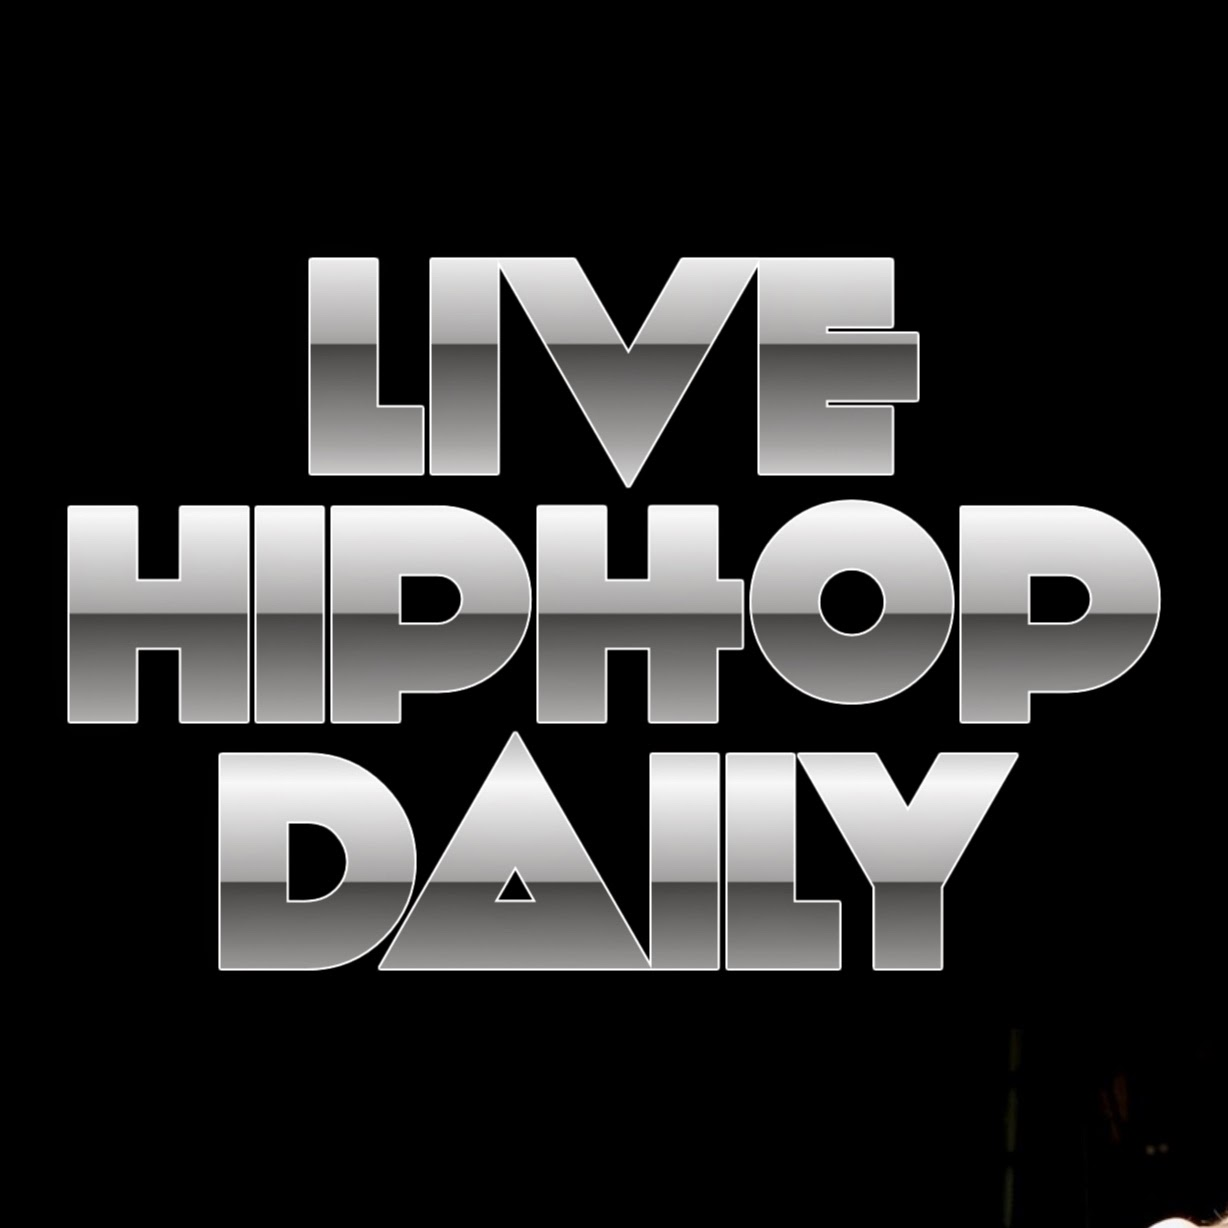 LIVEHIPHOPDAILY APP